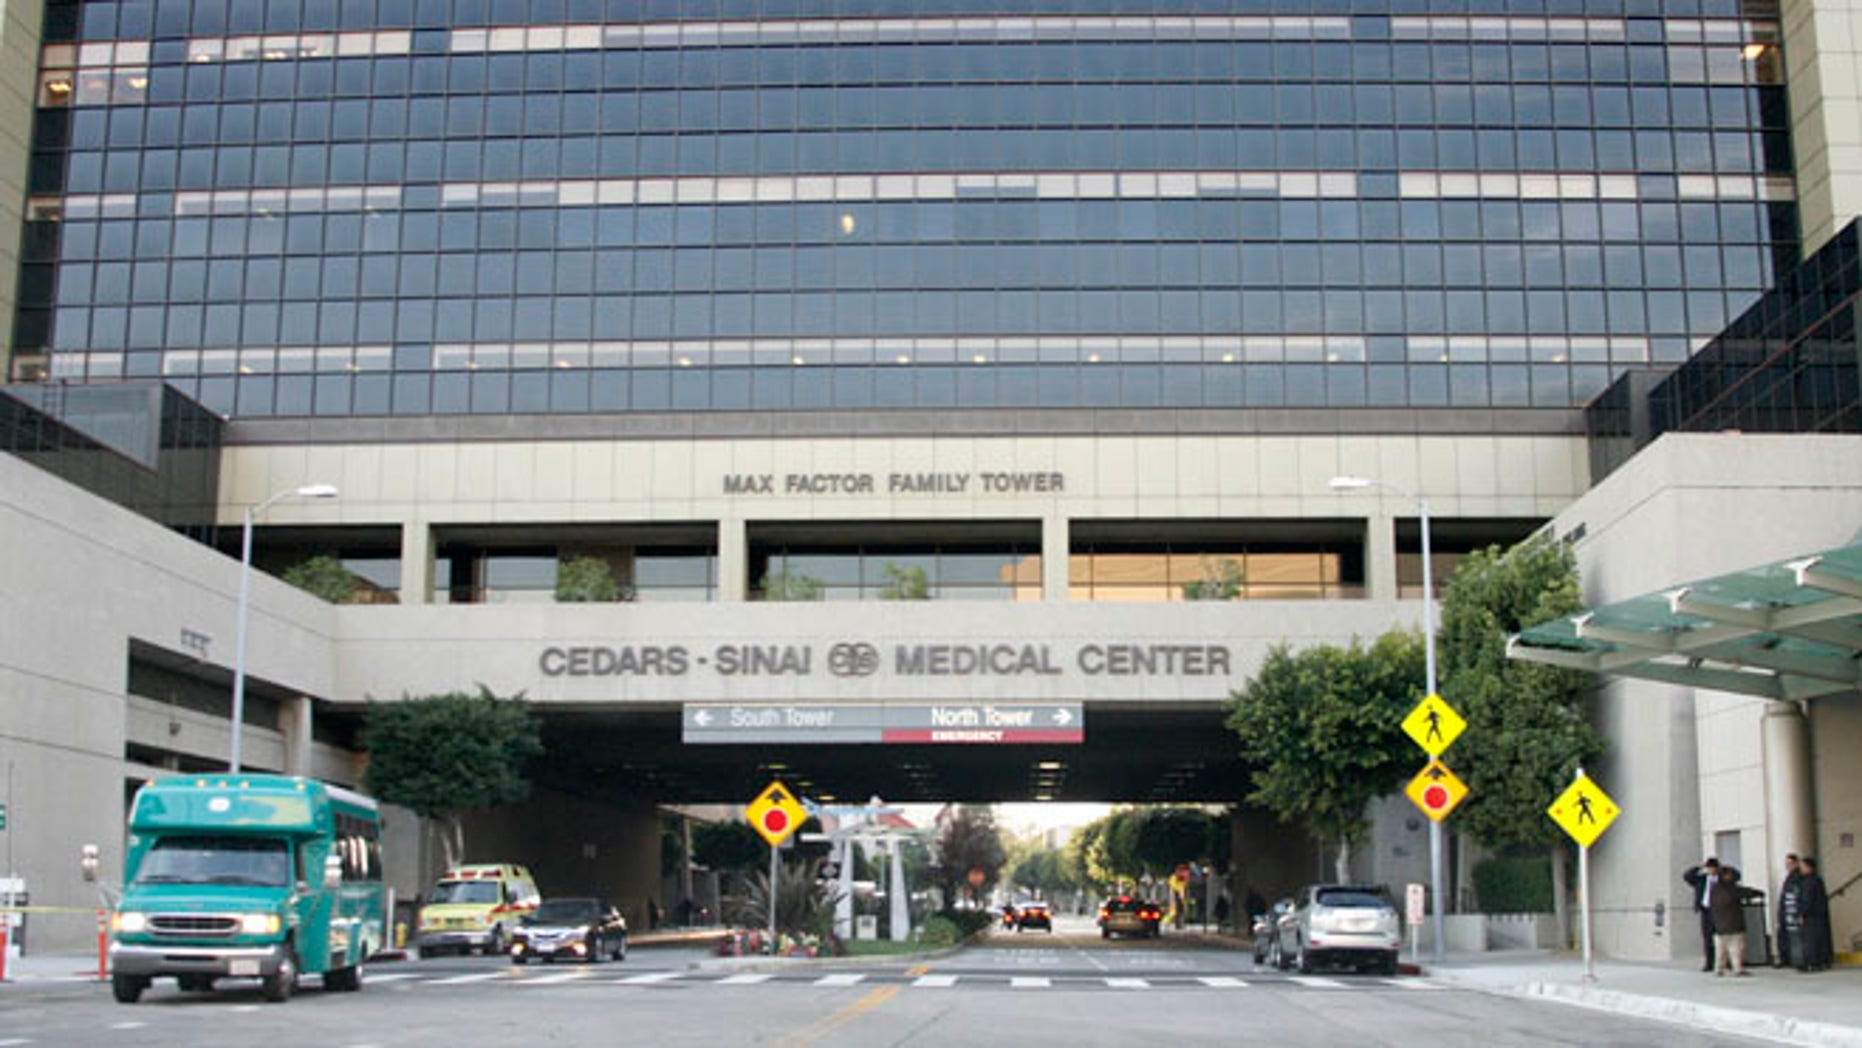 An exterior view of the Cedars Sinai Medical Center in Los Angeles, Calif. taken on December 9, 2009.